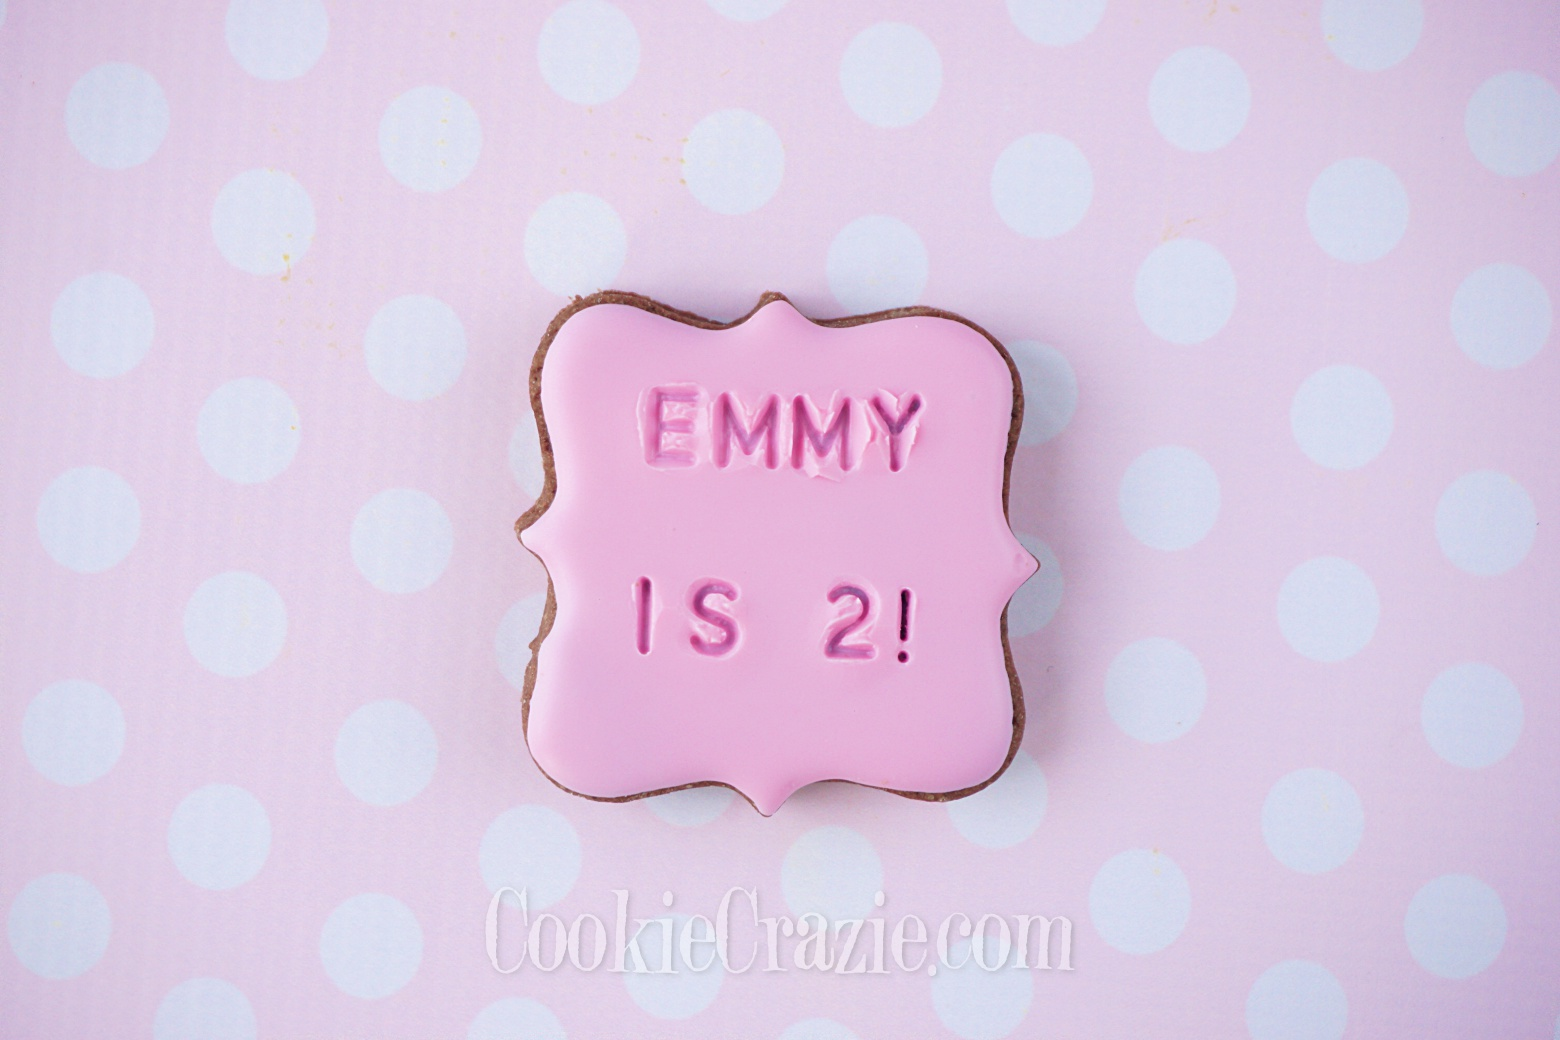 Emmy is TWO Birthday Plaque Decorated Sugar Cookie YouTube video  HERE